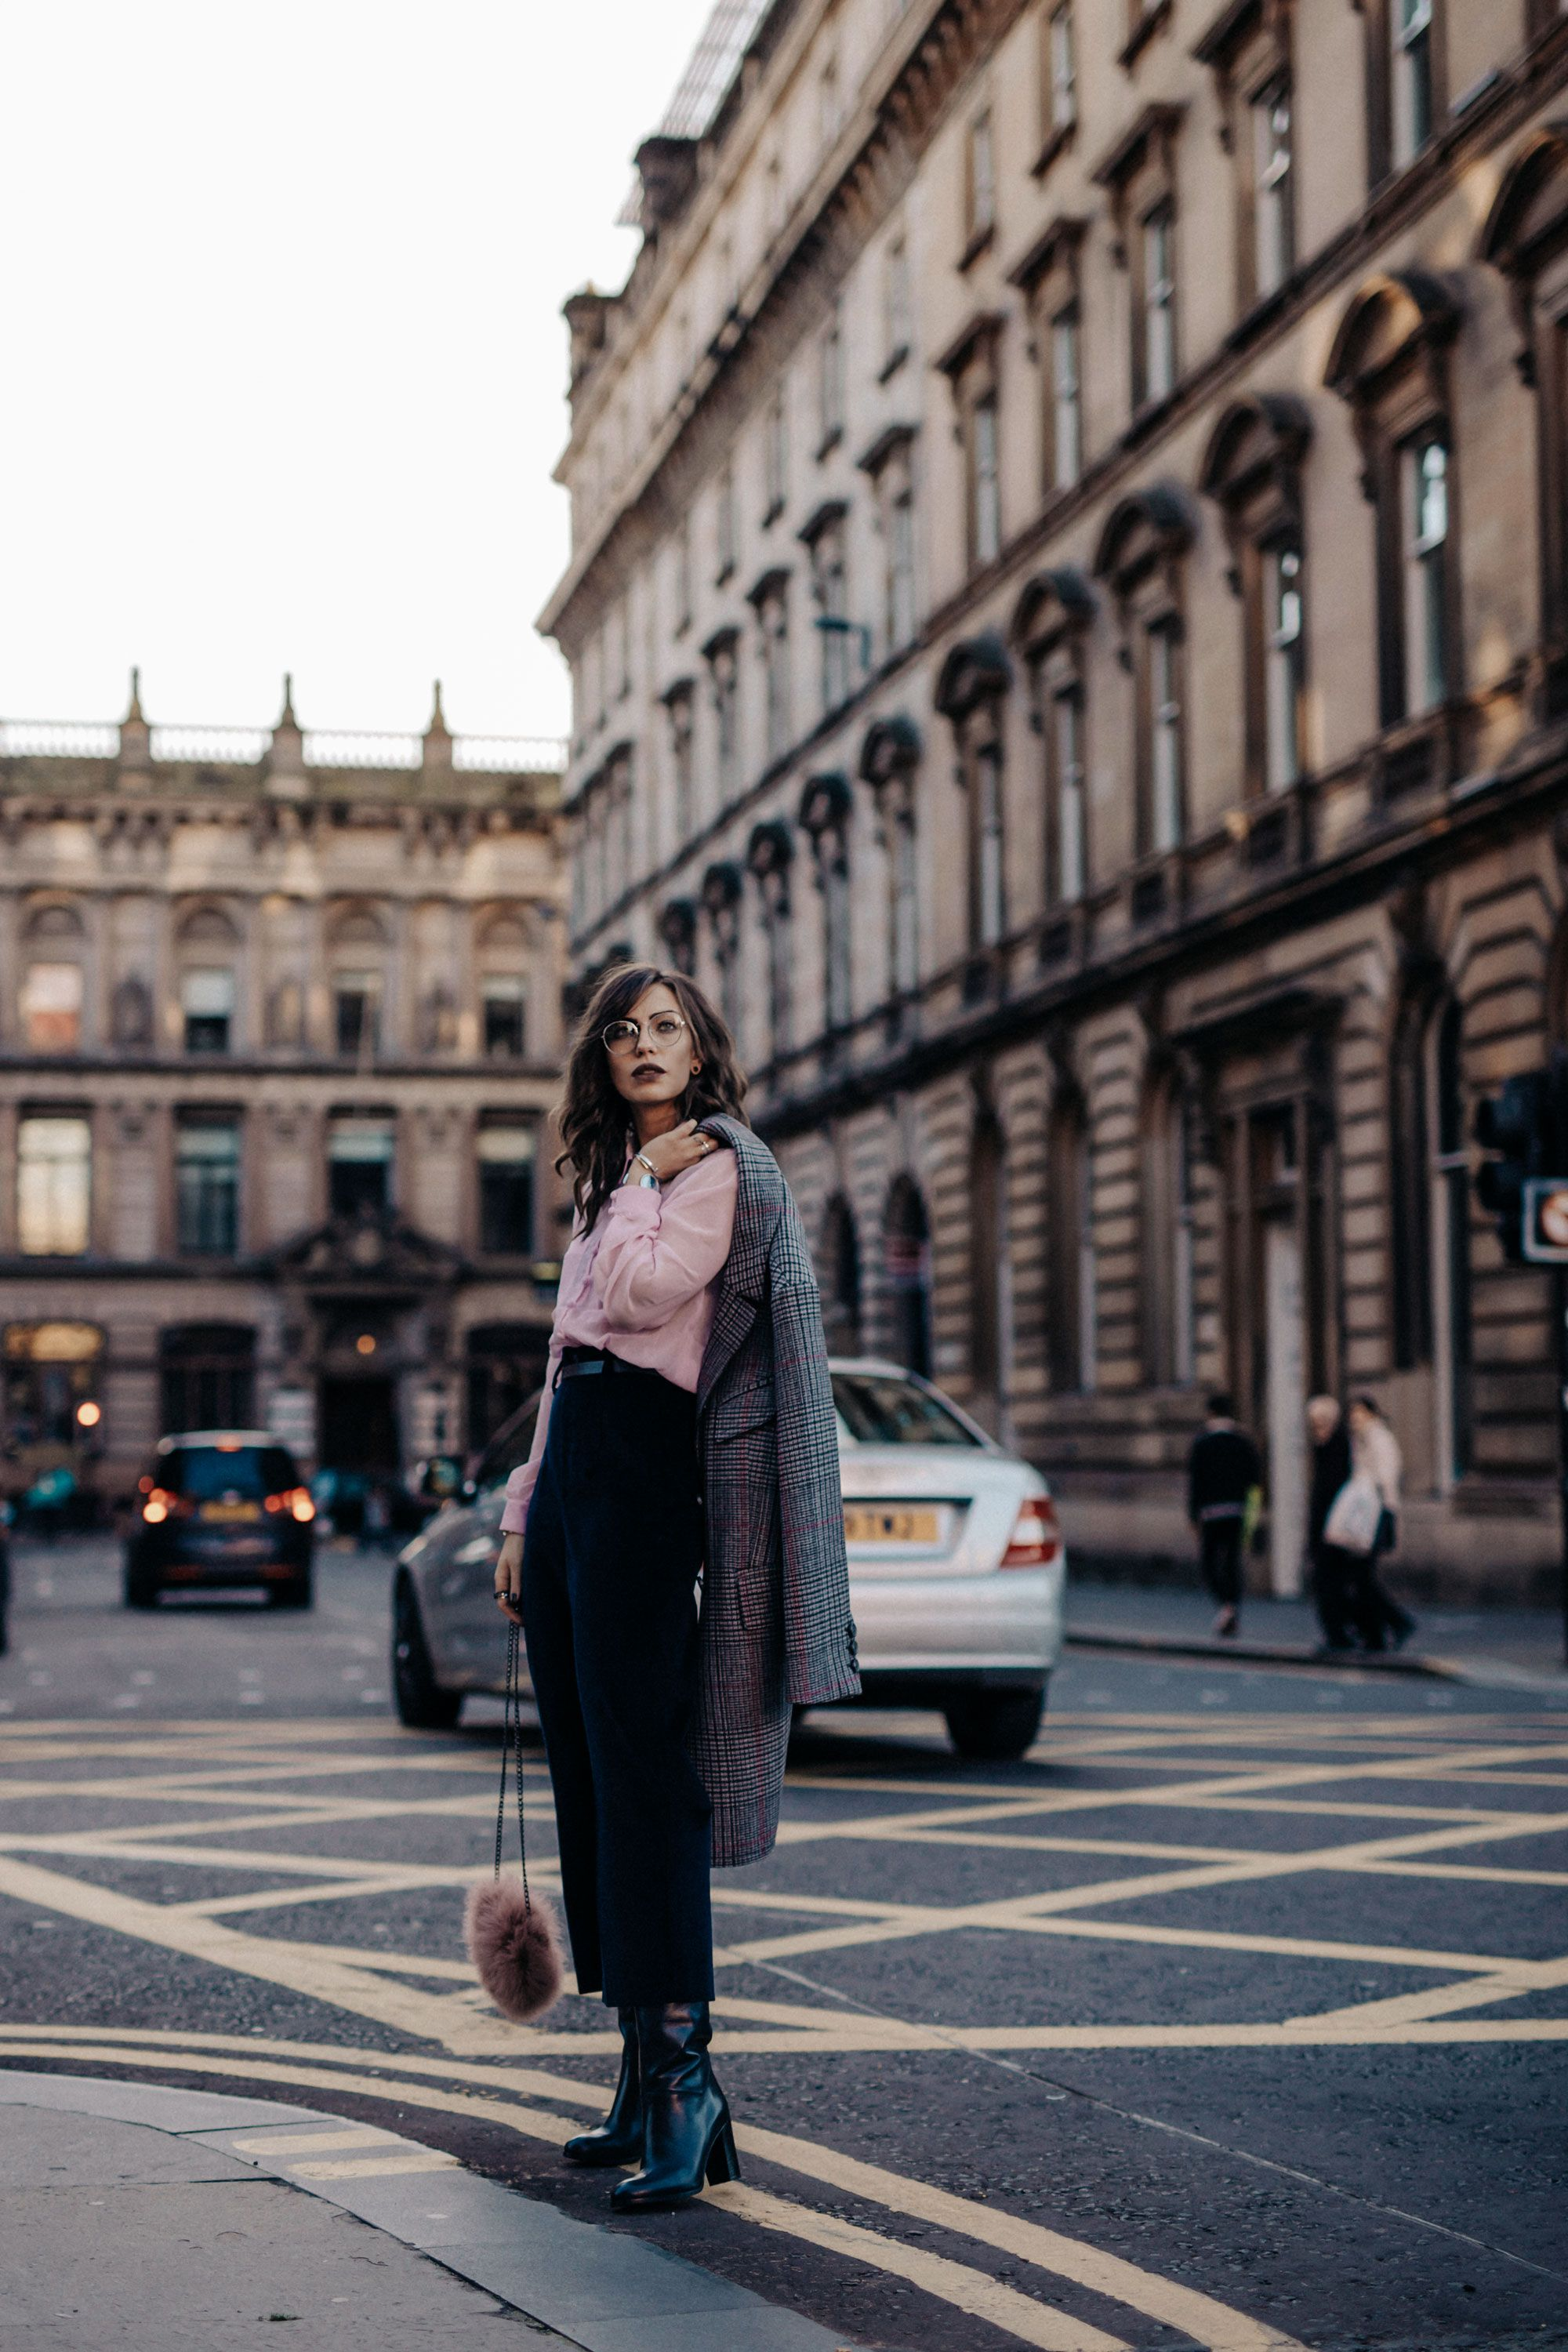 5 Tipps for Glasgow | Outfit: Max&Co. | Blogger | Street style | Fashion Editorial | Style: Autumn / Winter | Business | simple, effortless, chic, preppy | Scotland, London, UK #editorialfashion